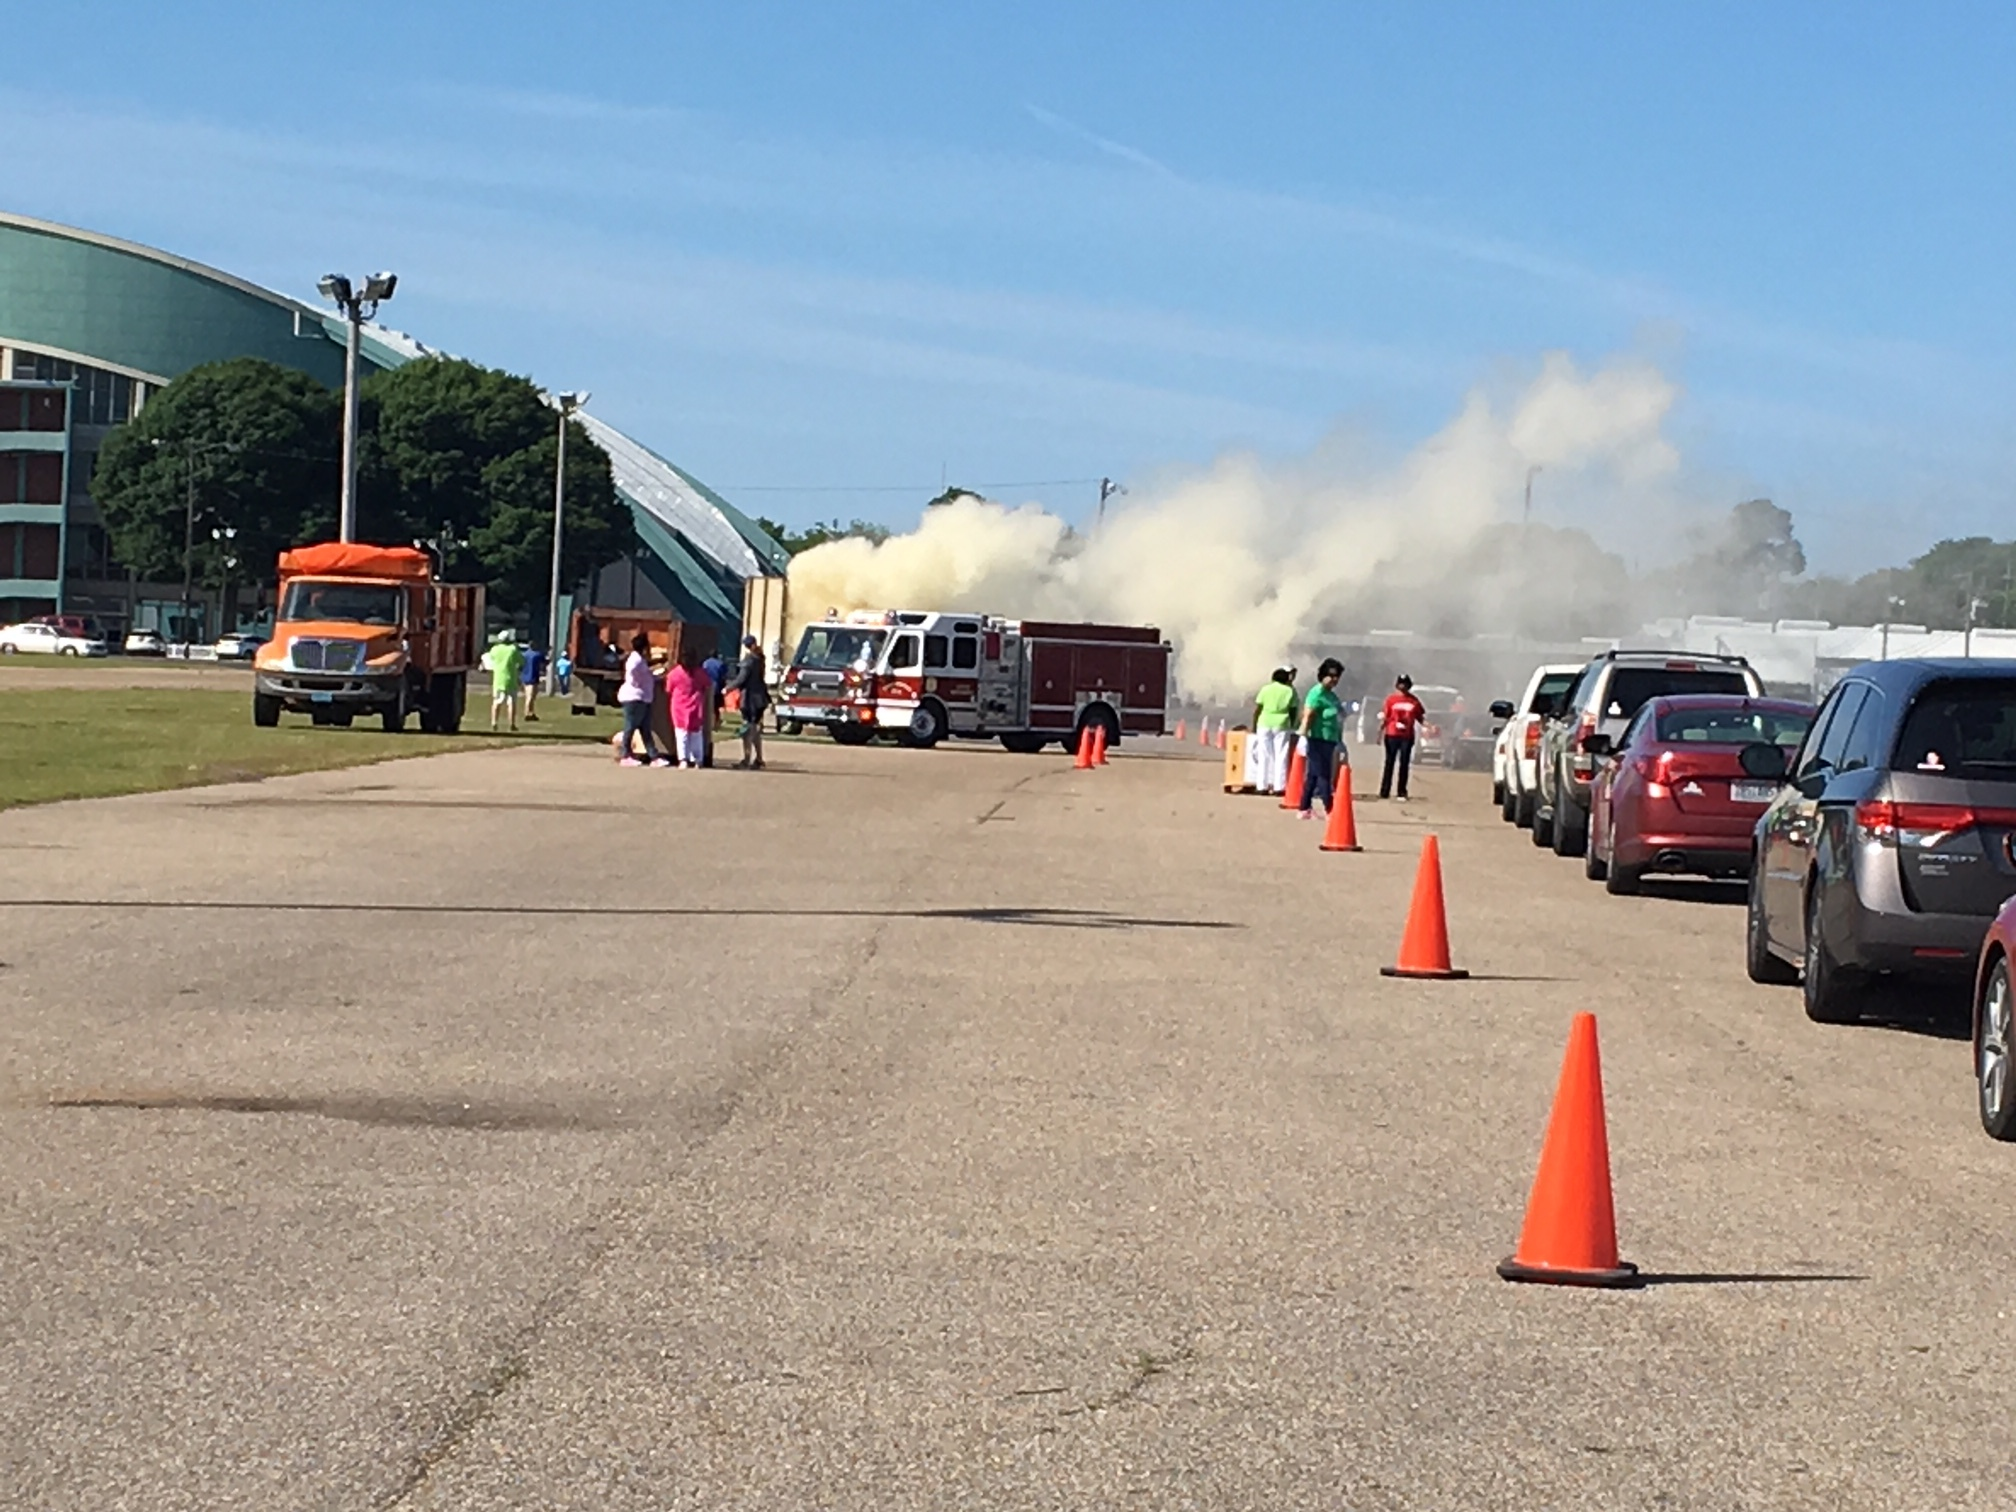 Our April 13, 2018 event was exciting, to say the least. One of our shredding trucks caught on fire- which provides us with a great example of why it's important to only bring paper to shredding. This fire was most likely caused by a lithium battery that was mixed in with someones paper.   Thank you to Montgomery Fire Department for your amazing response time!